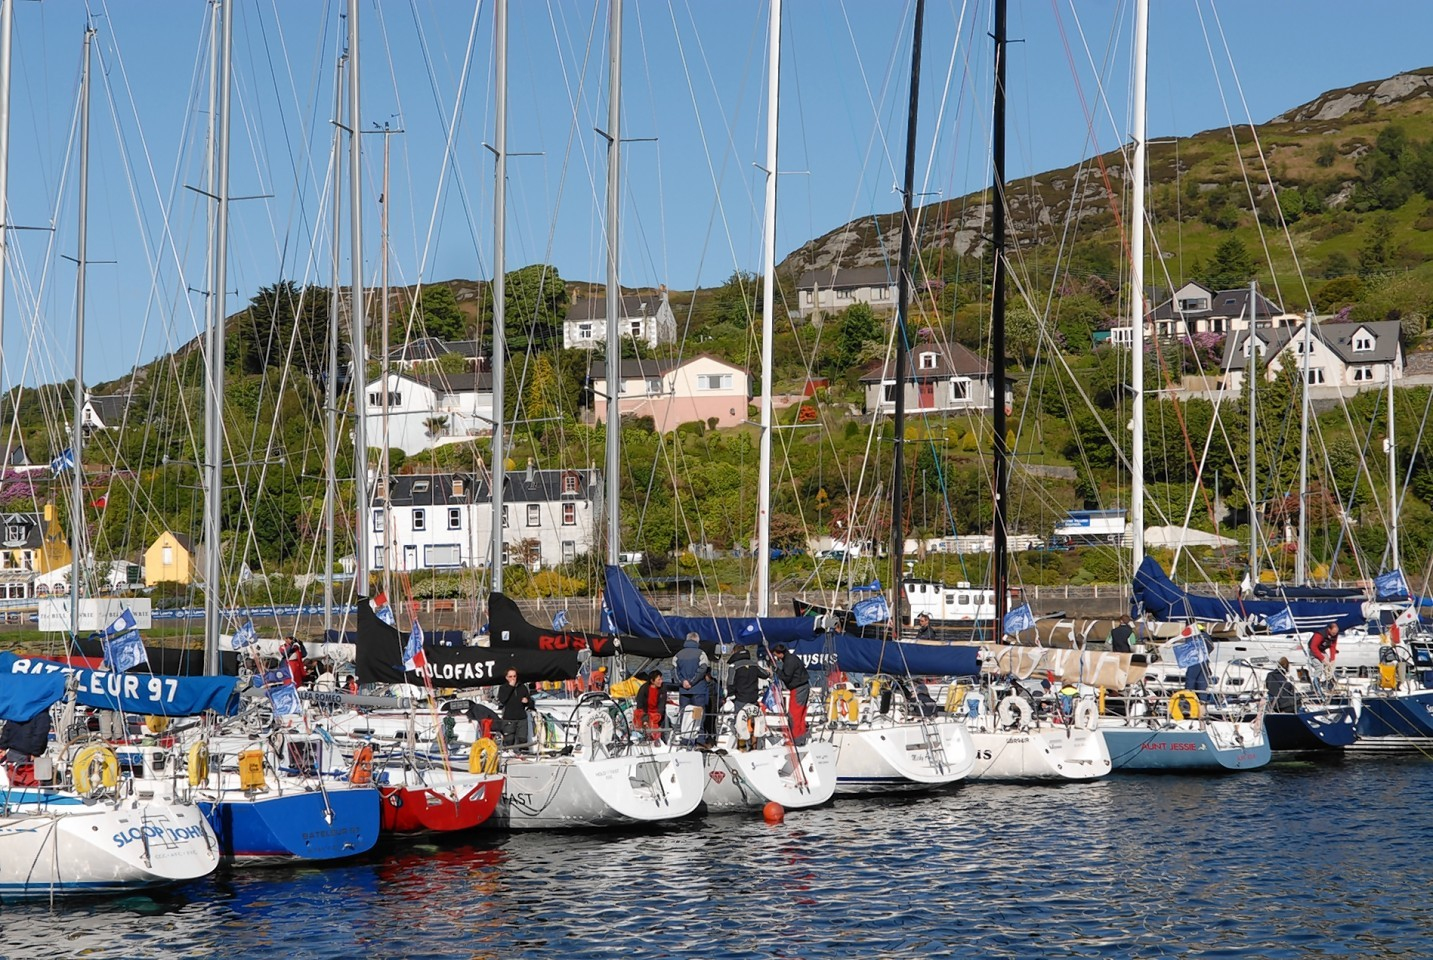 The event will take place in Tarbert from May 22-25